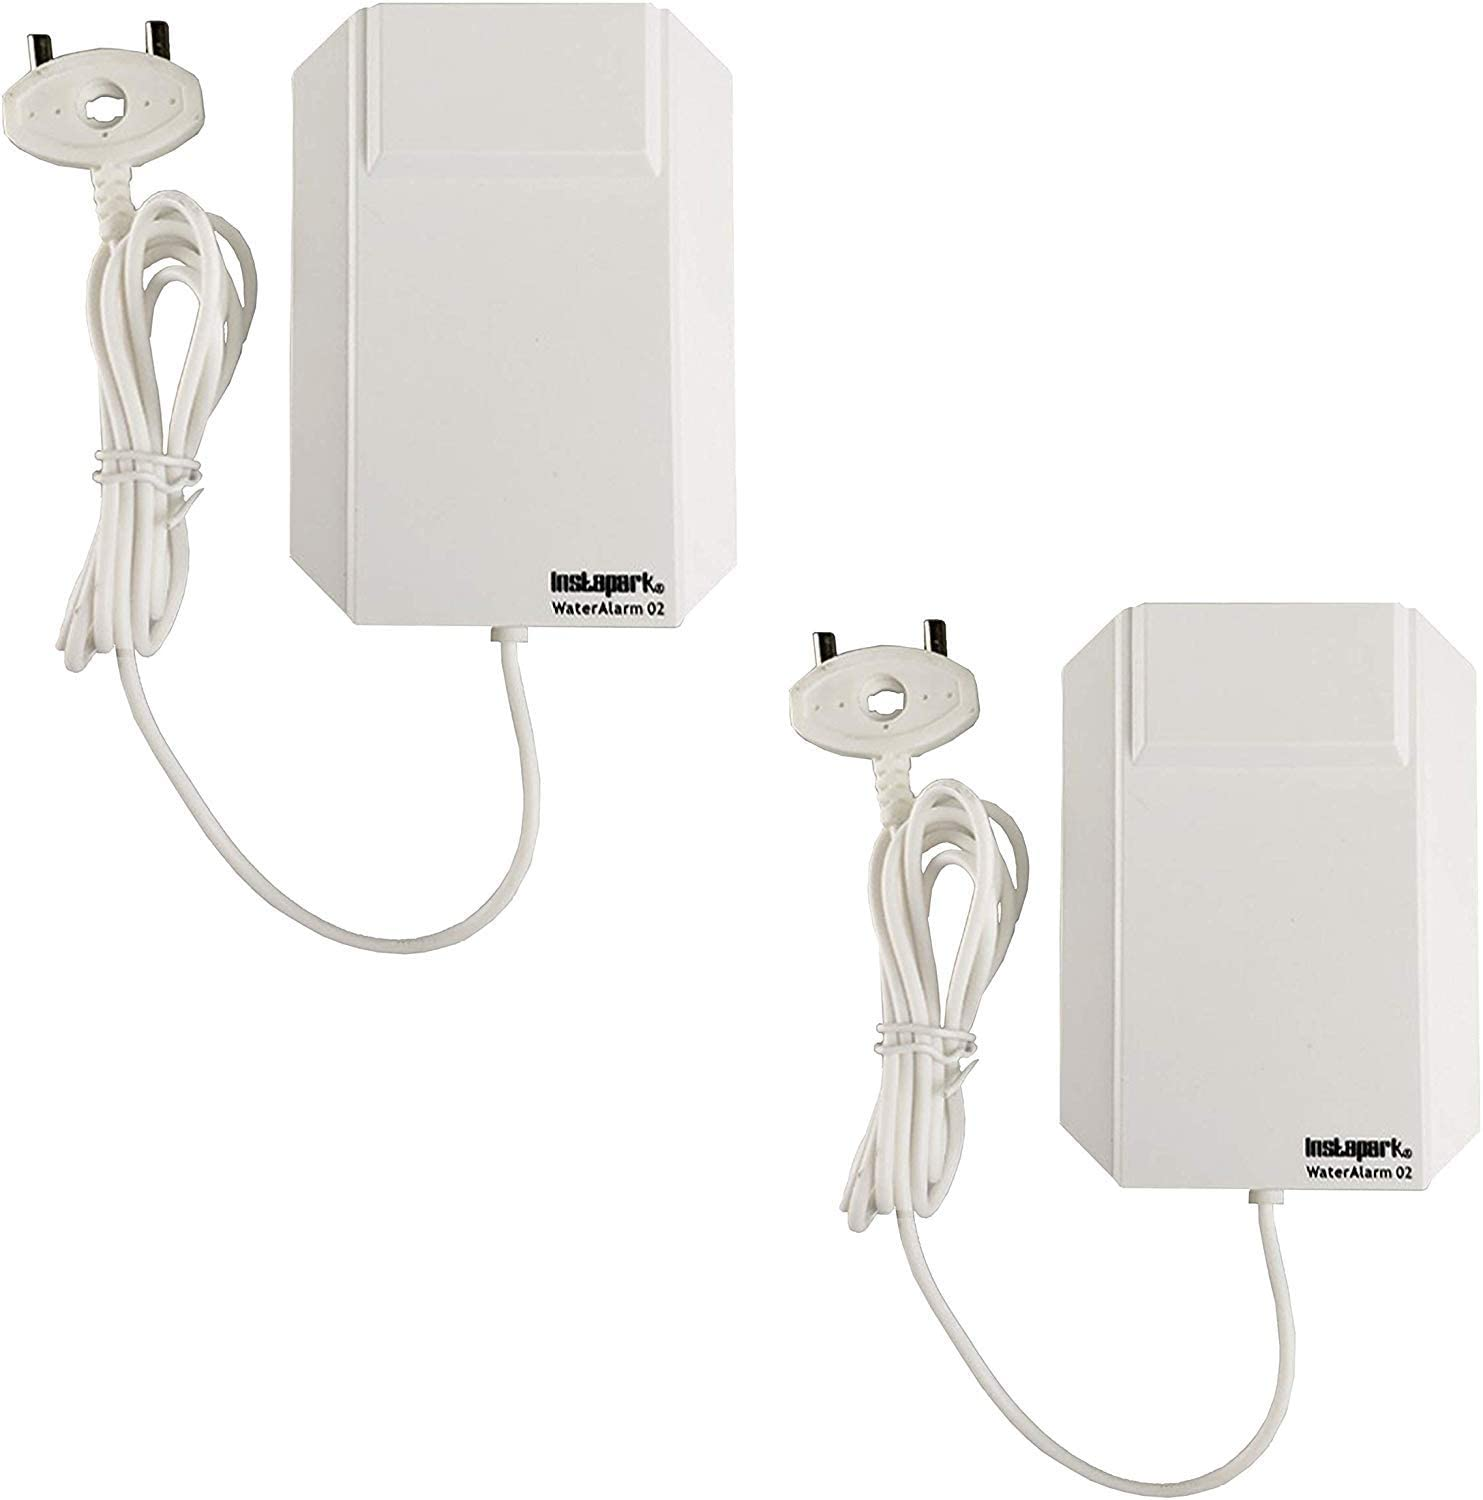 Instapark Water Alarm Product Image